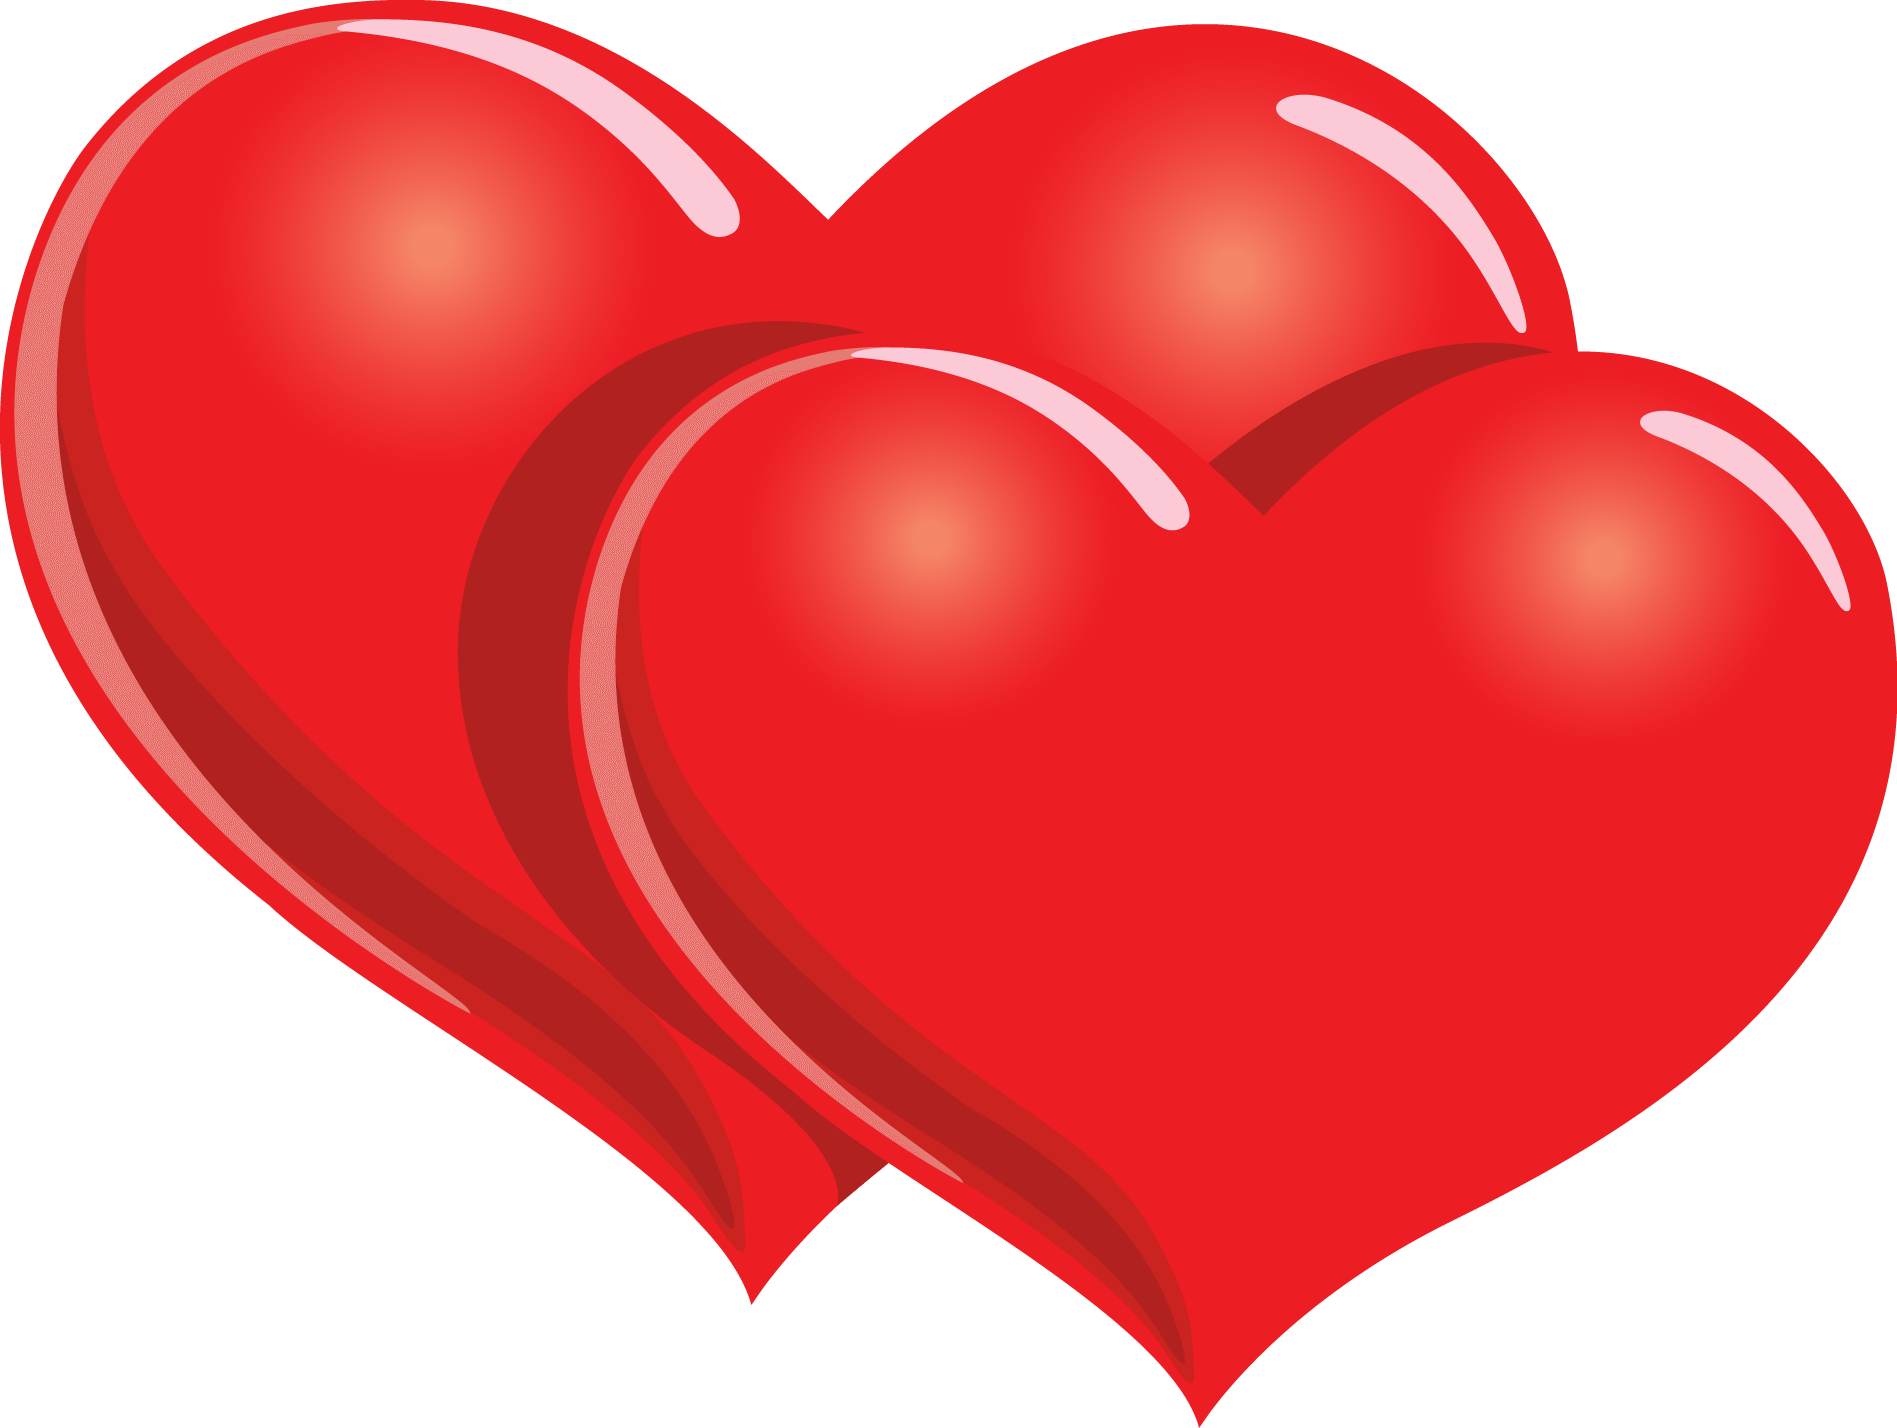 Valentines day heart png. Happy two hearts transparent